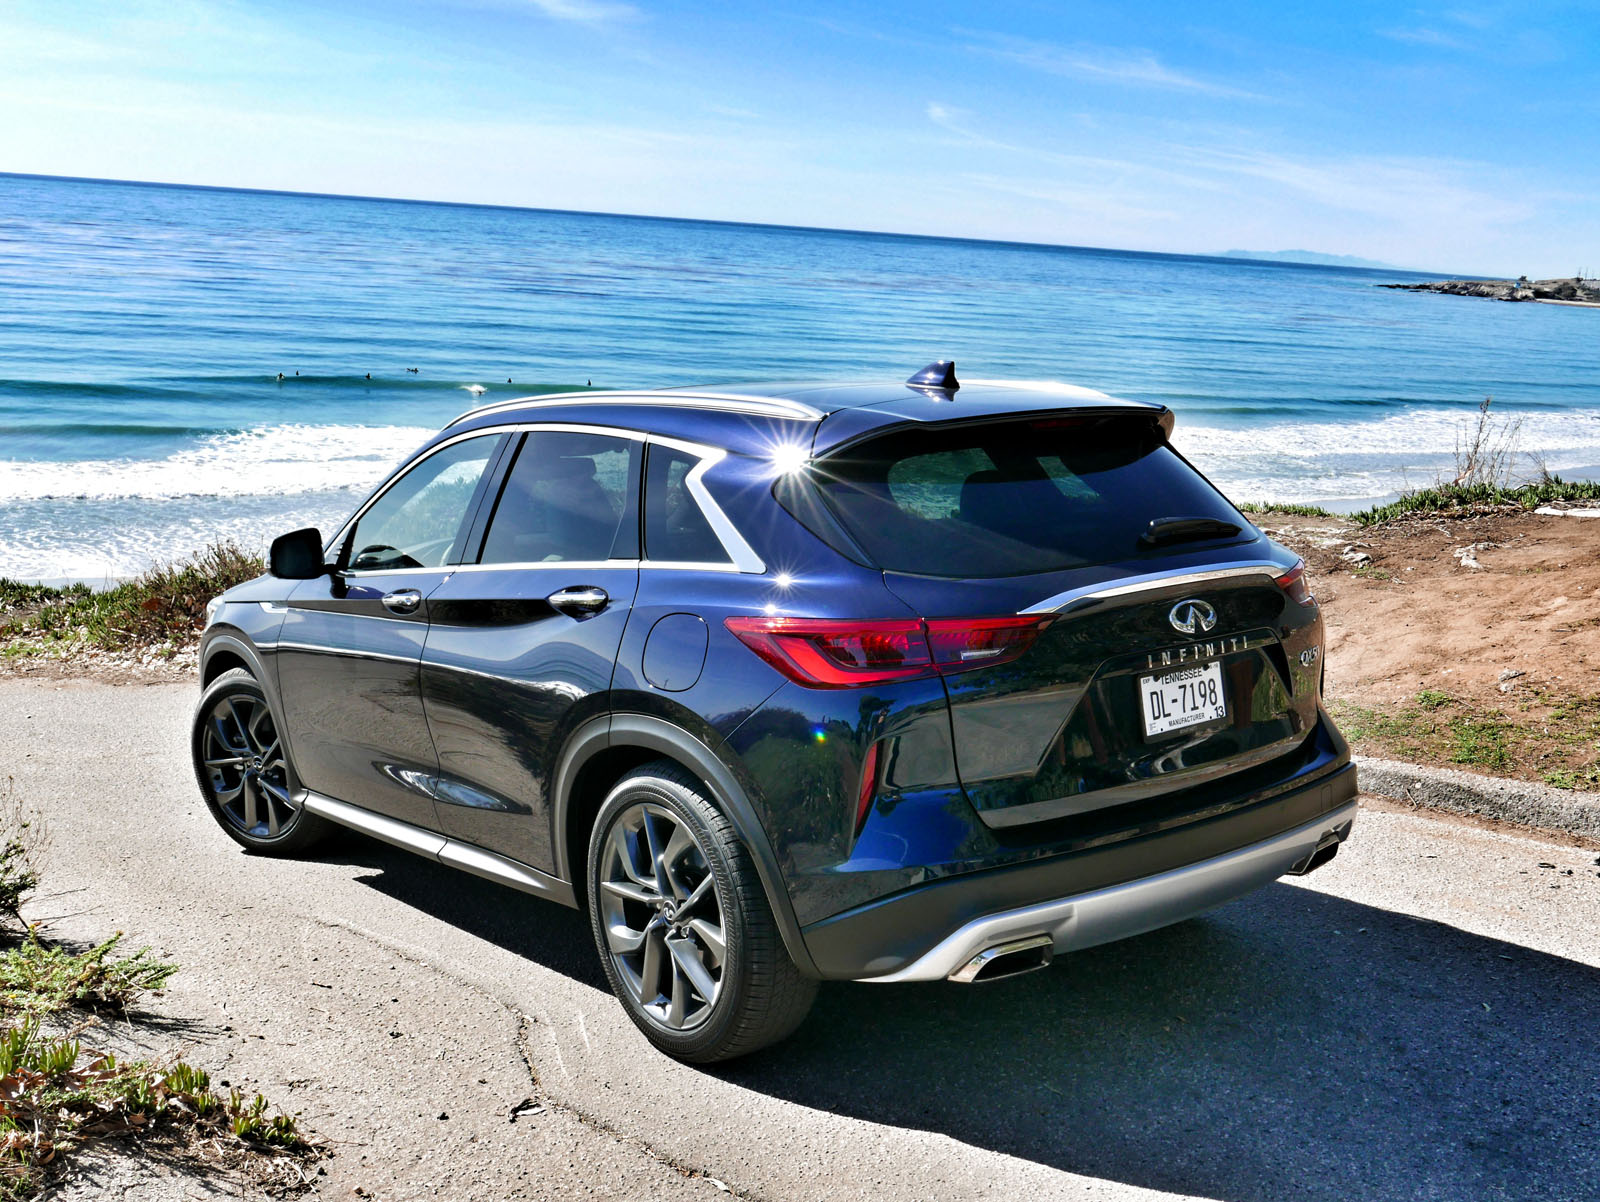 2019-Infiniti-QX50-Review-Ben-Hunting-20.jpg